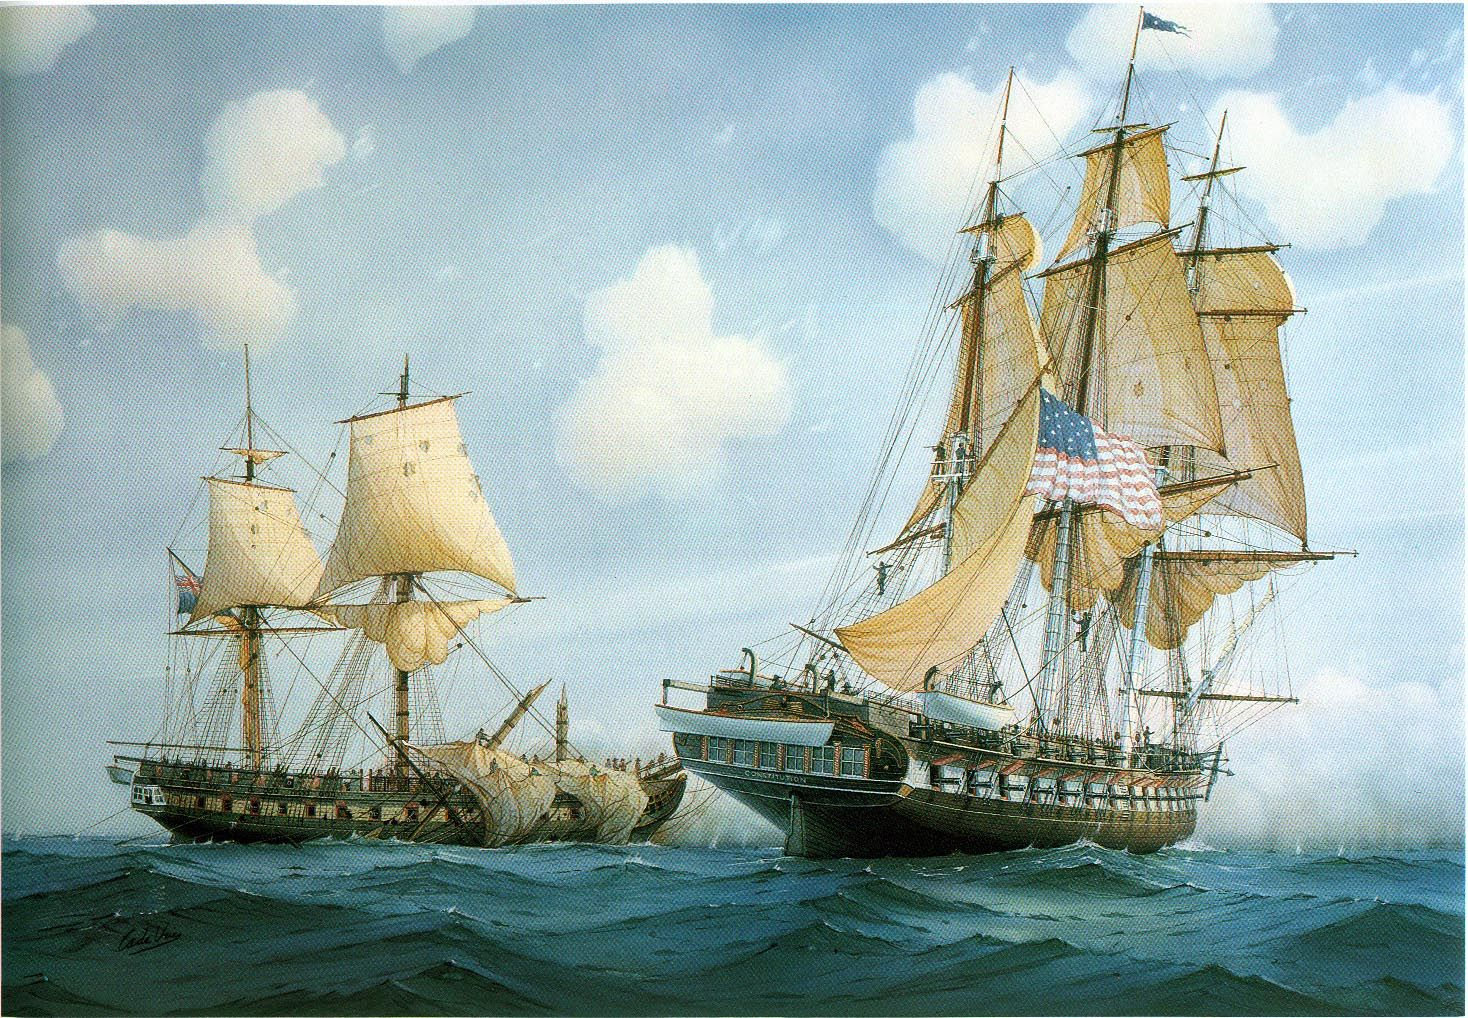 USS Constitution Hero of the War of 1812 History USAUss Constitution 1812